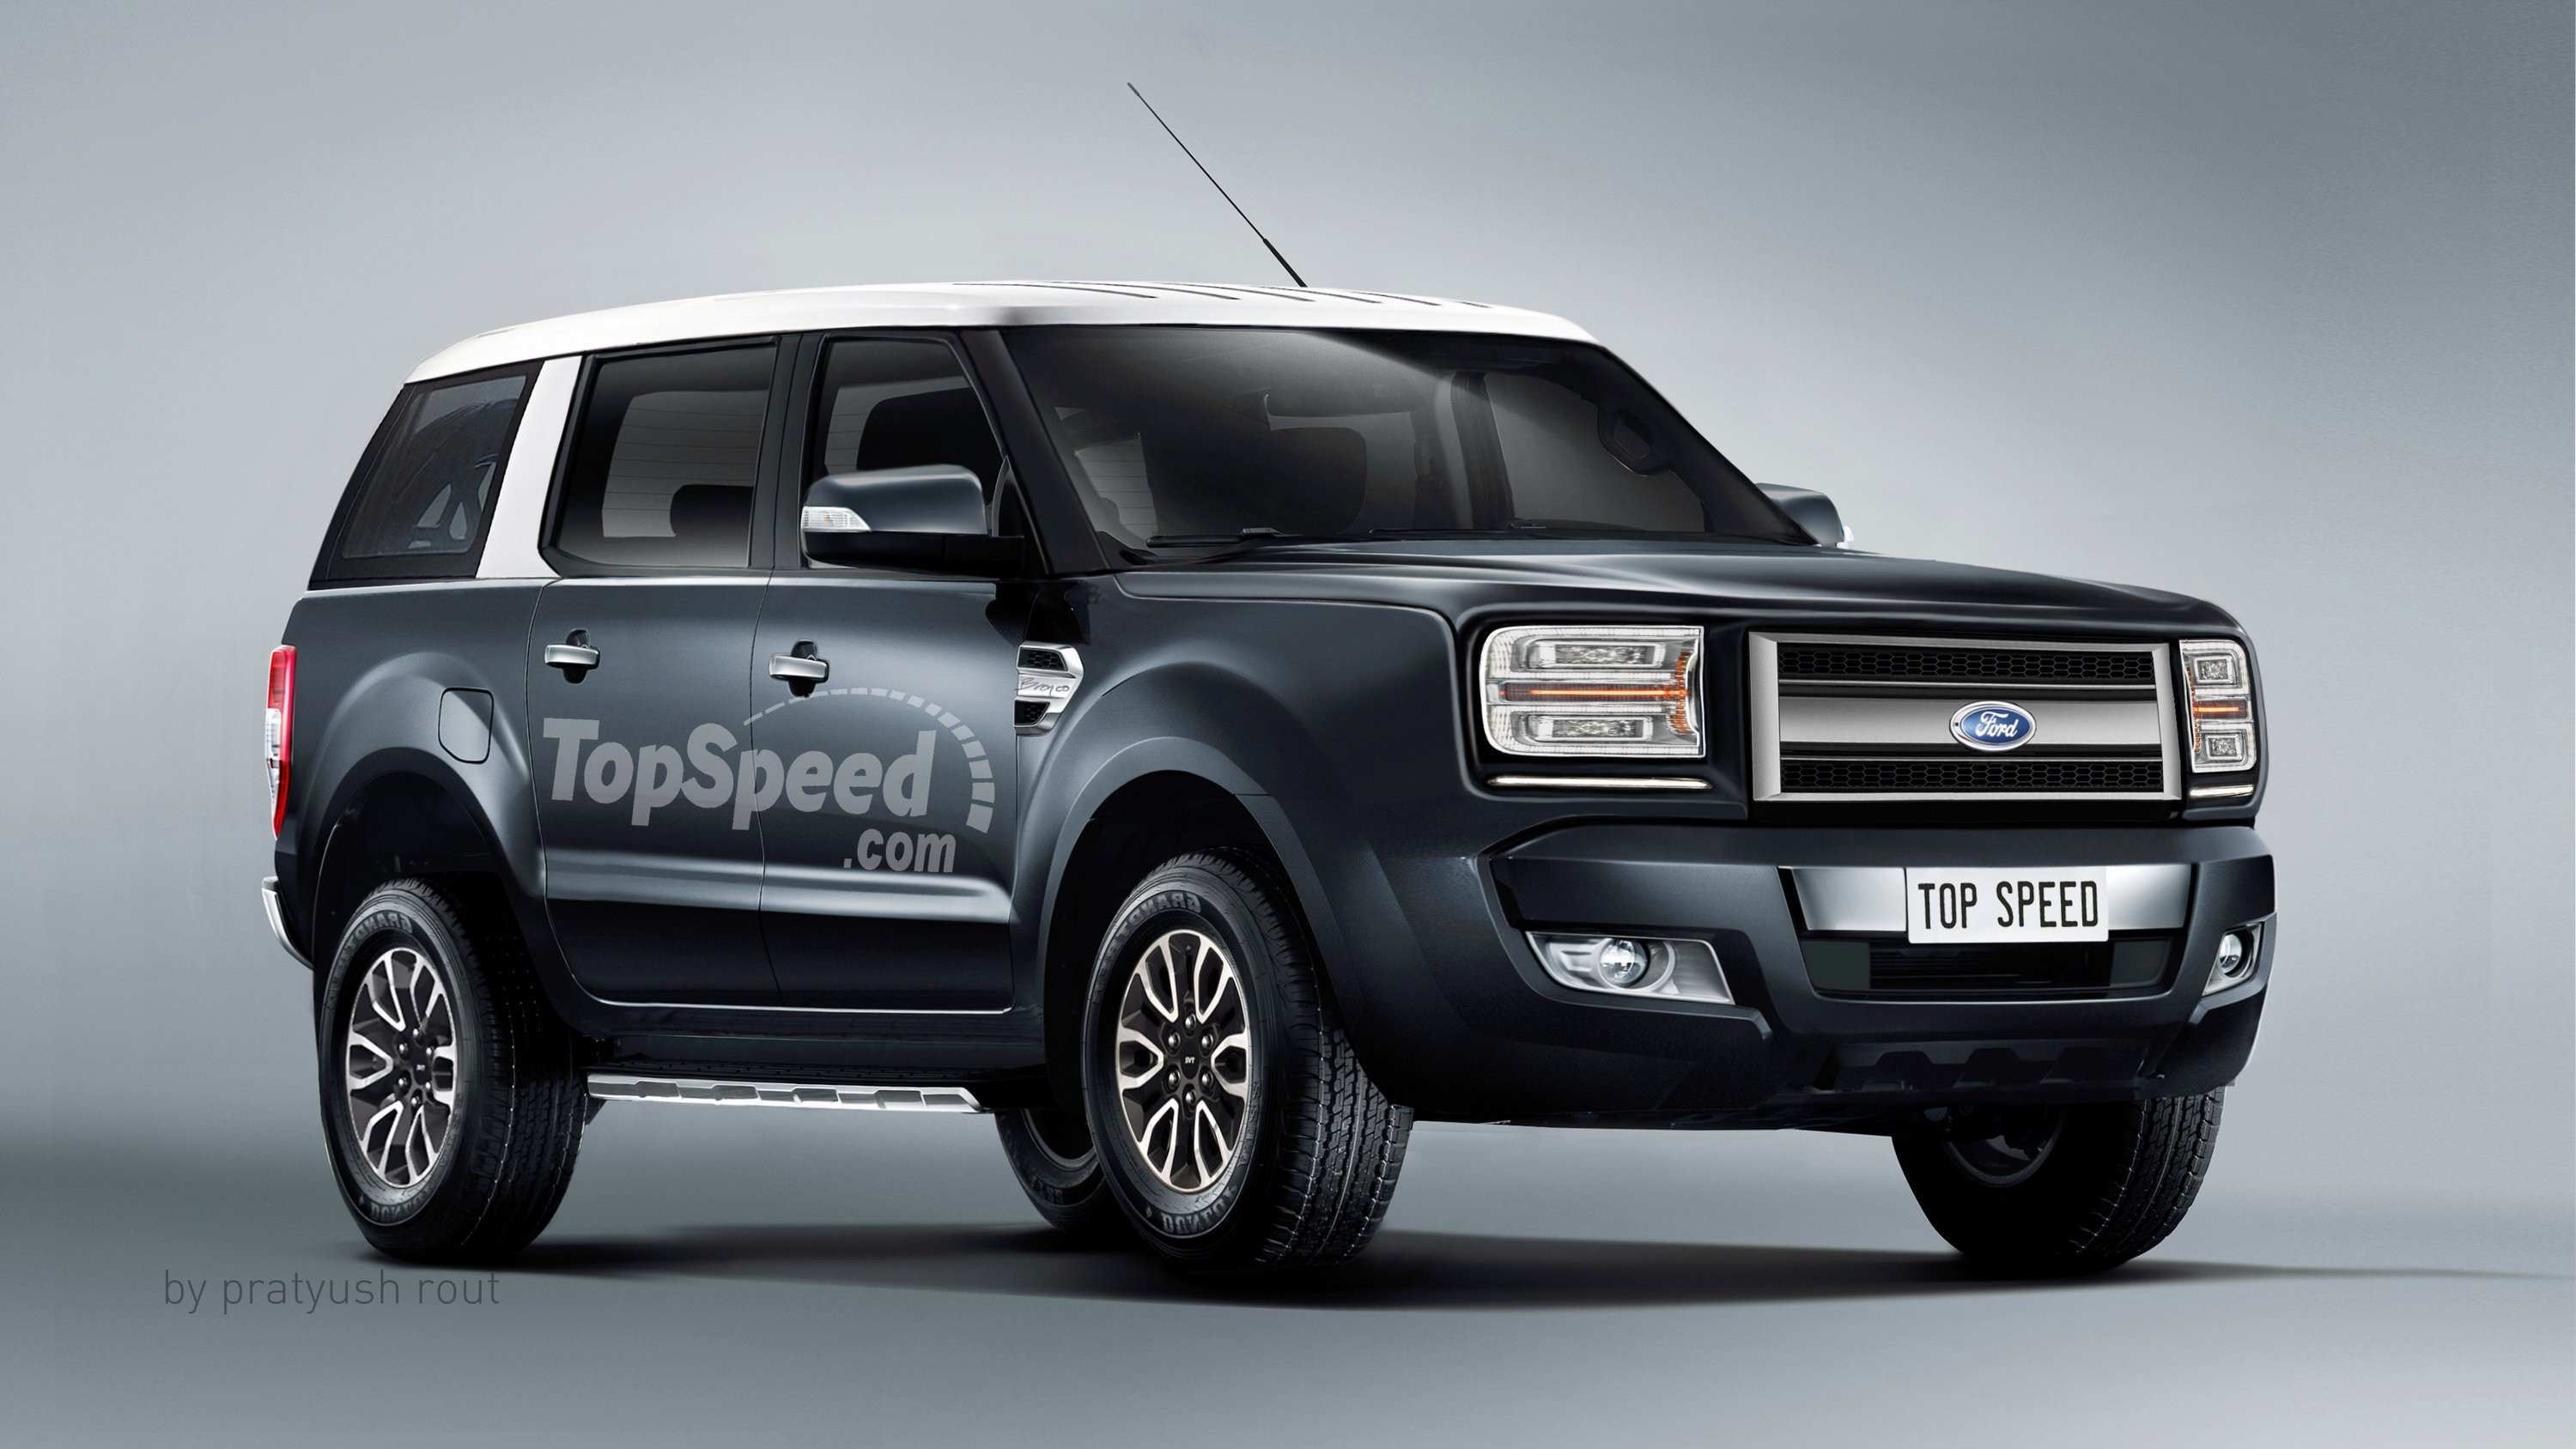 11 Concept of 2020 Ford Bronco Wallpaper Exterior for 2020 Ford Bronco Wallpaper